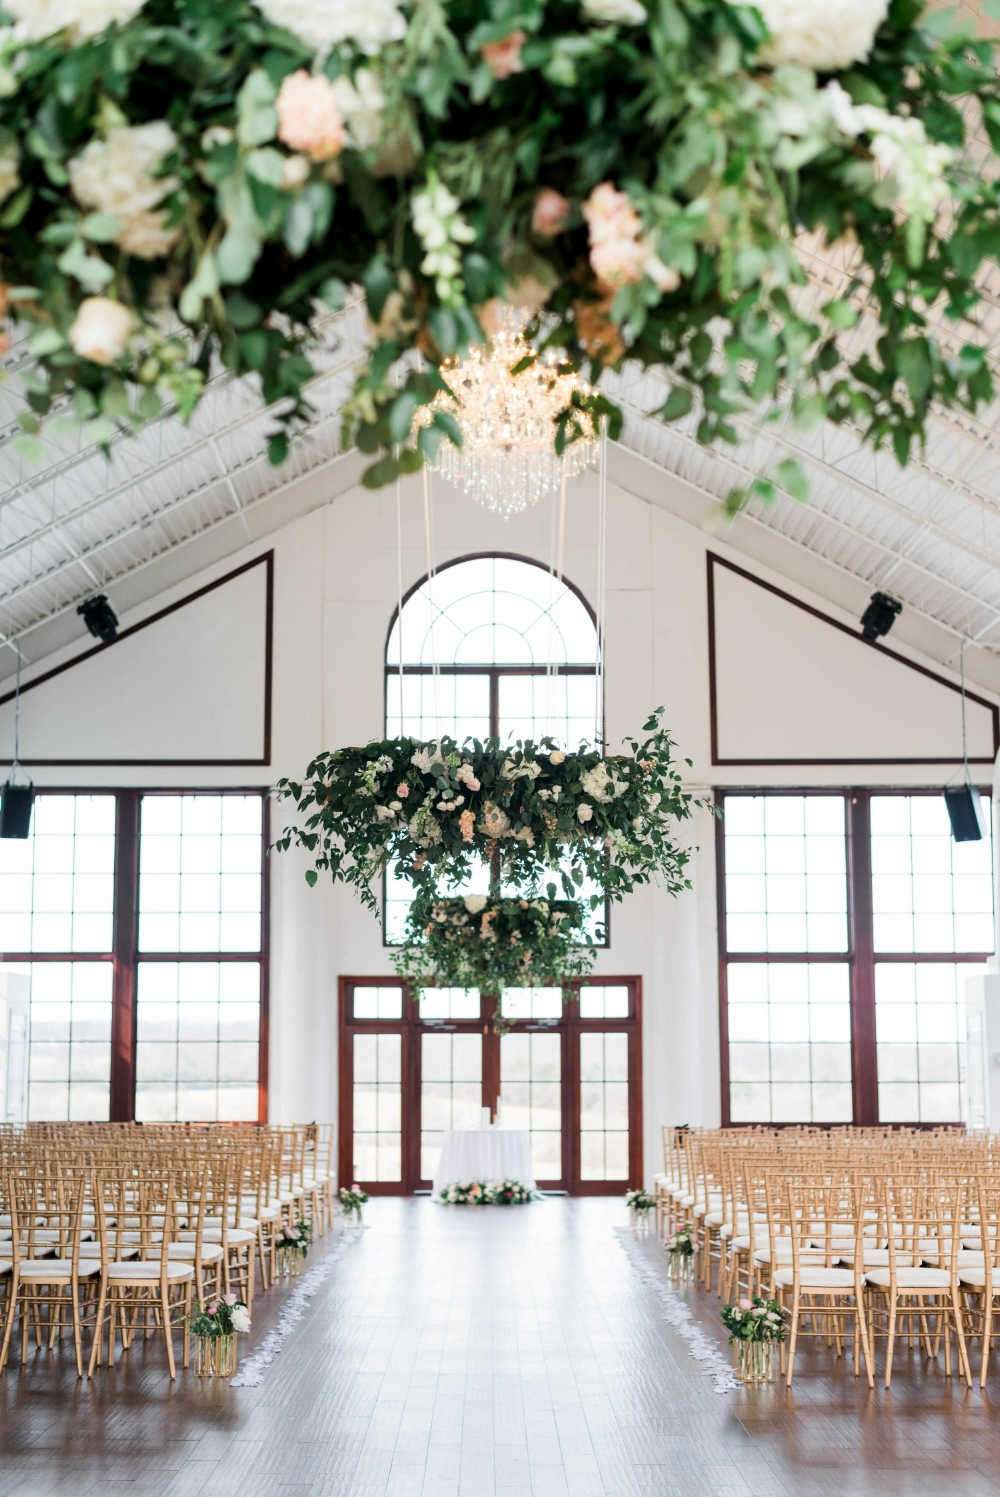 Stunning floral and greenery installations at Raspberry Plain Manor, Leesburg, Virginia in April, the beautiful chandelier at the venue is framed by our designs. The wedding party processed under the elegant installation creating a gorgeous atmosphere. Photography by Adam Mullins.